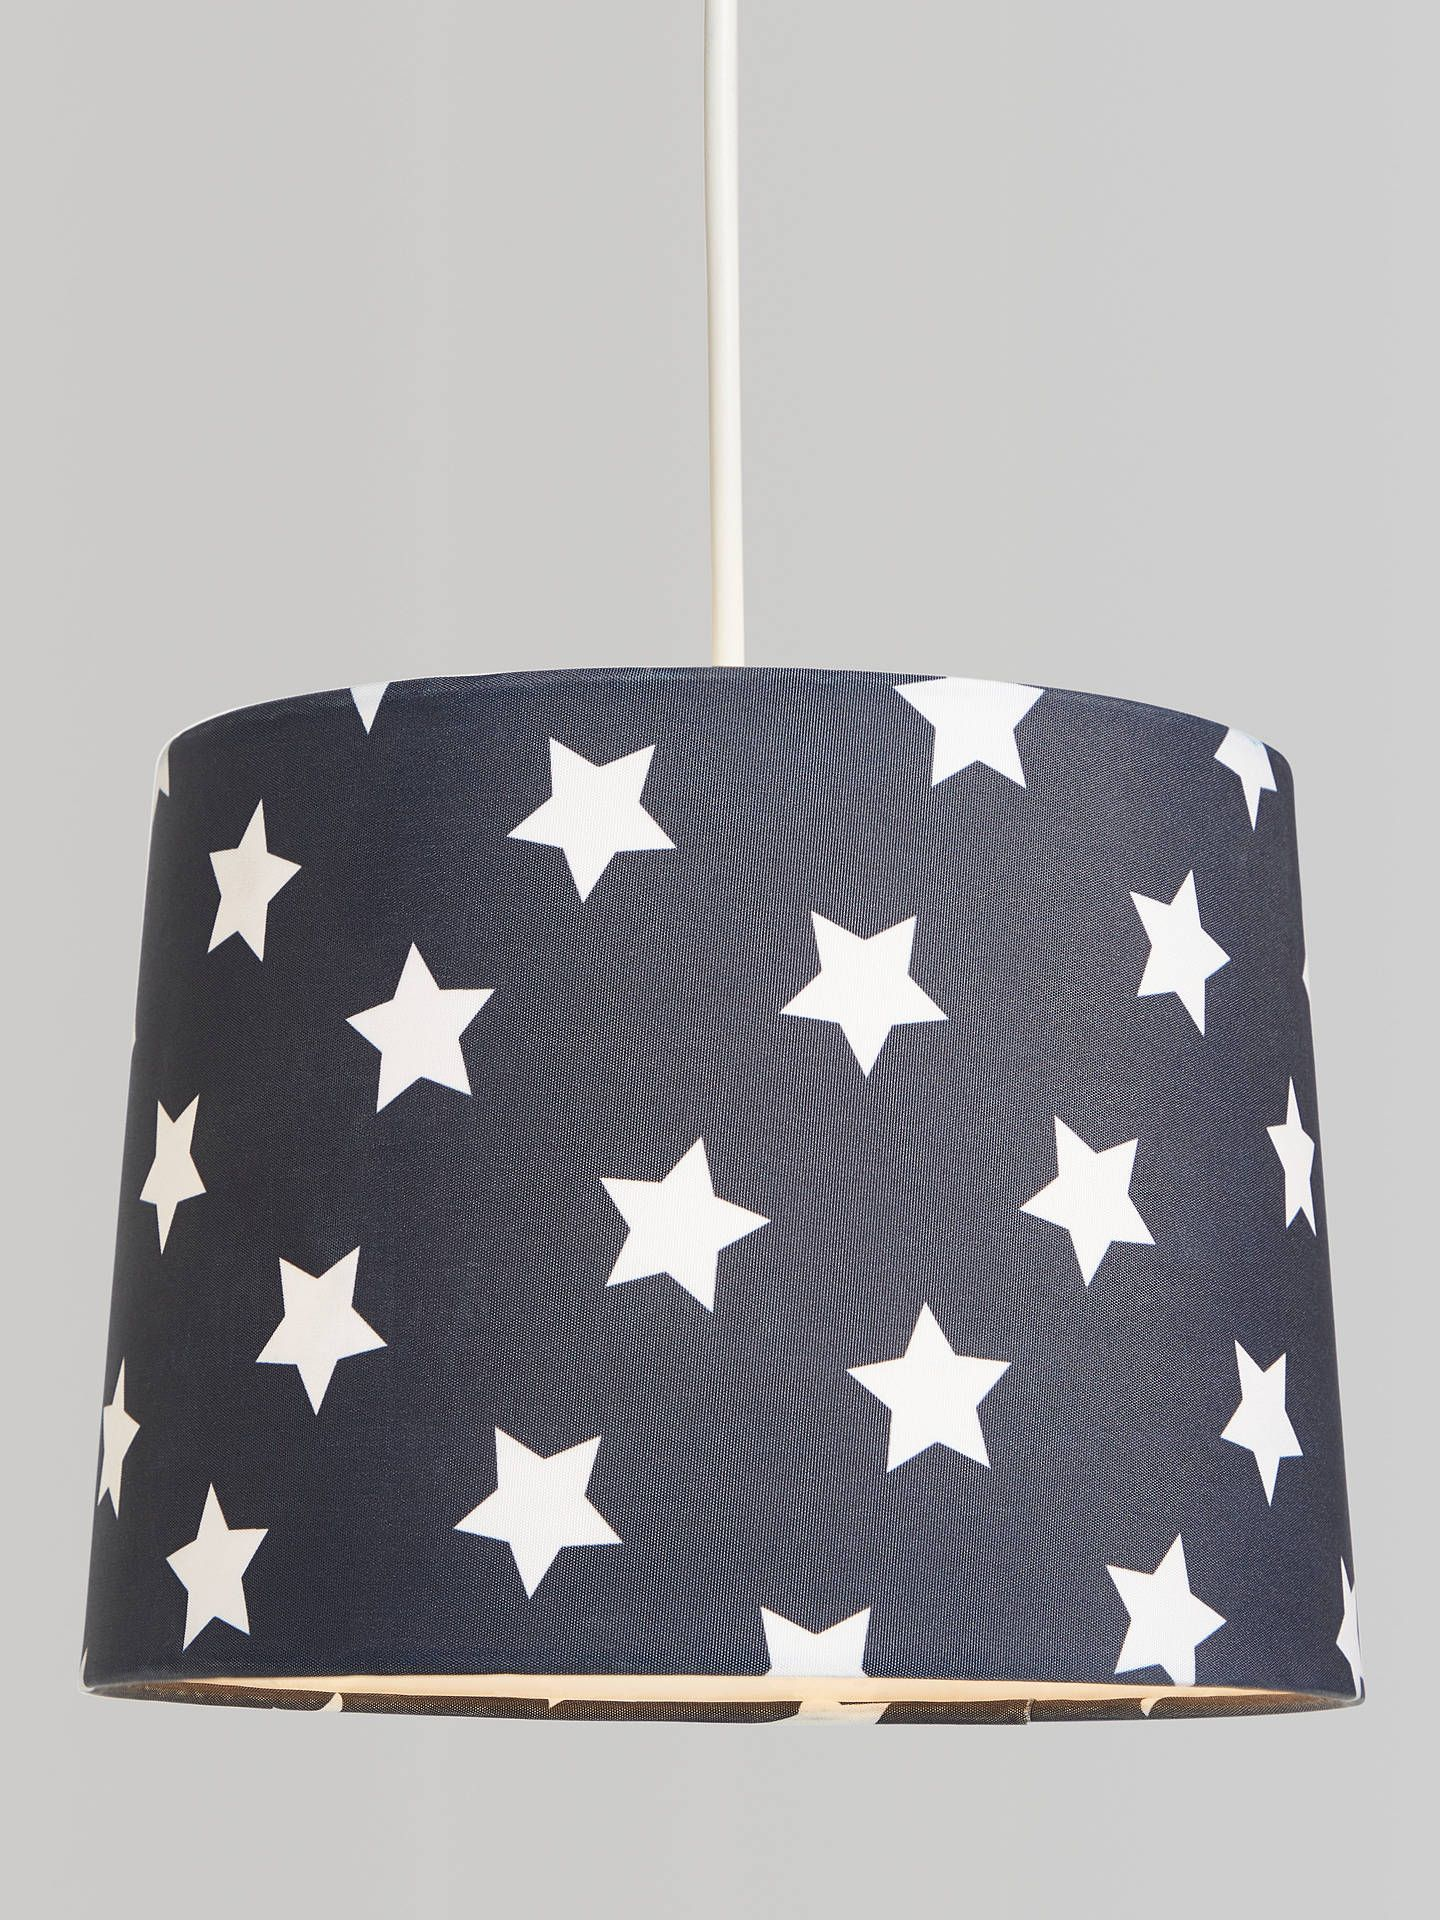 Little Home At John Lewis Star Lampshade Navy In 2020 Lamp Shades Little Houses Ceiling Lamp Shades